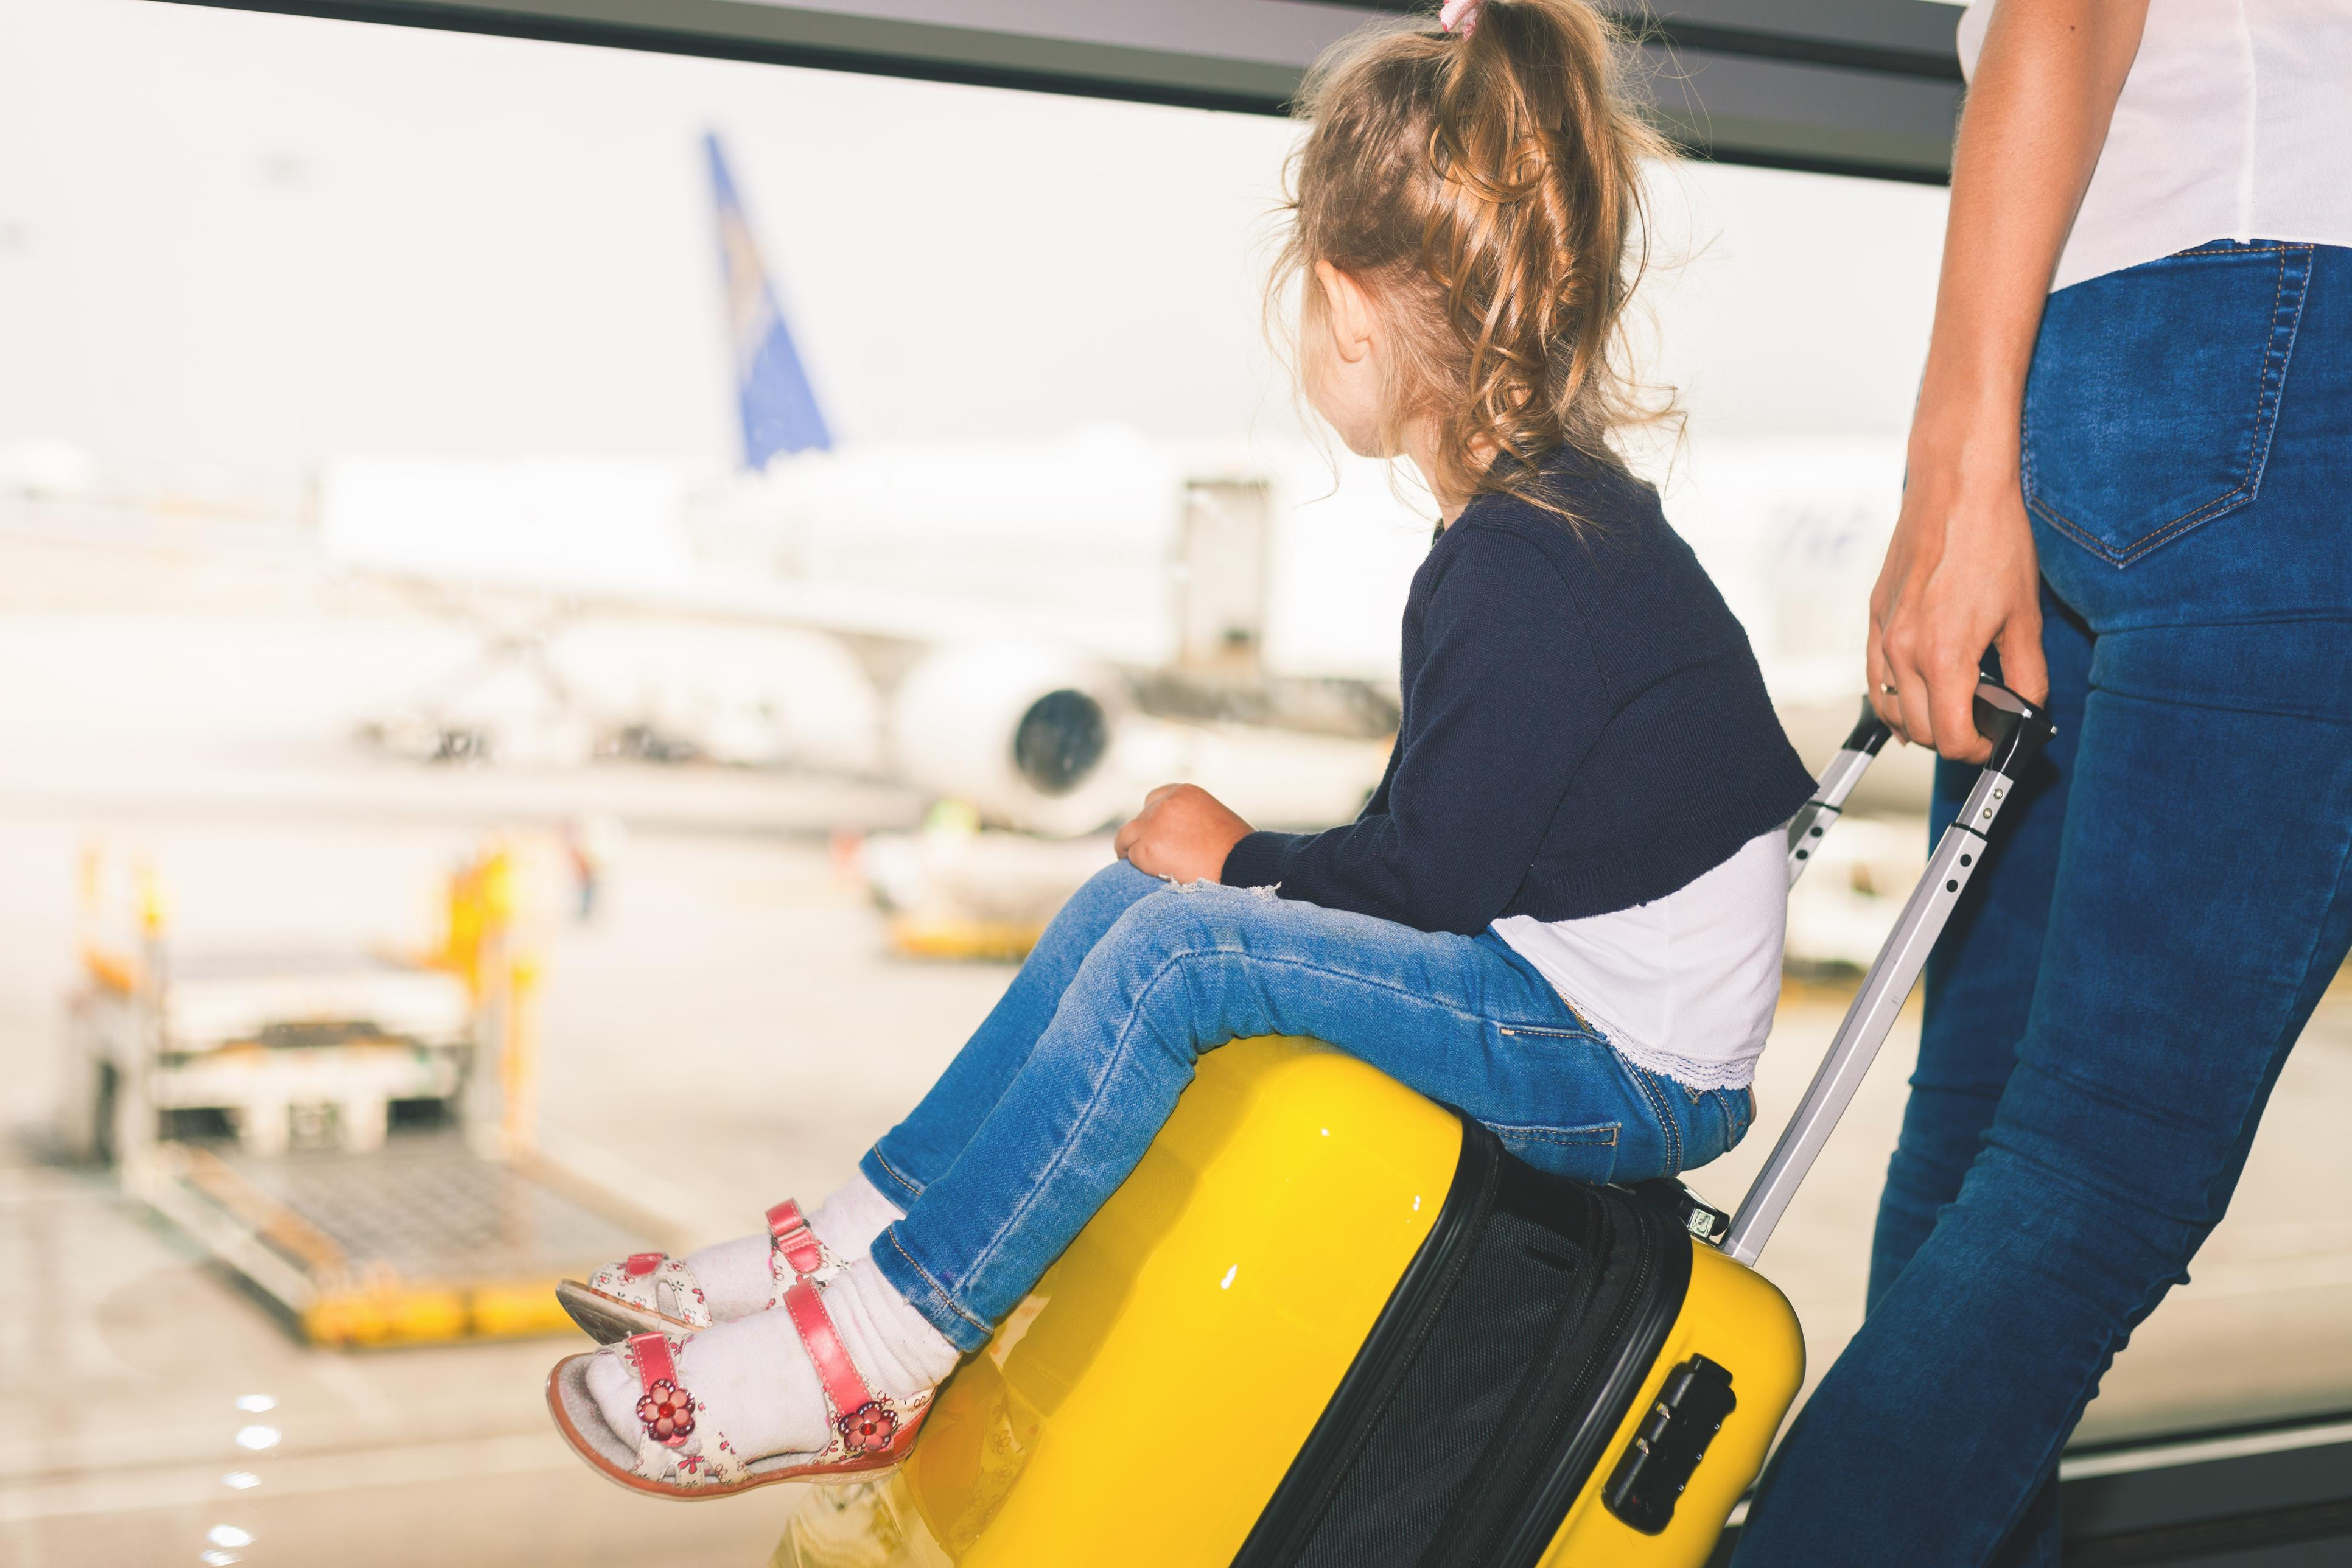 Family holiday tips: during the journey